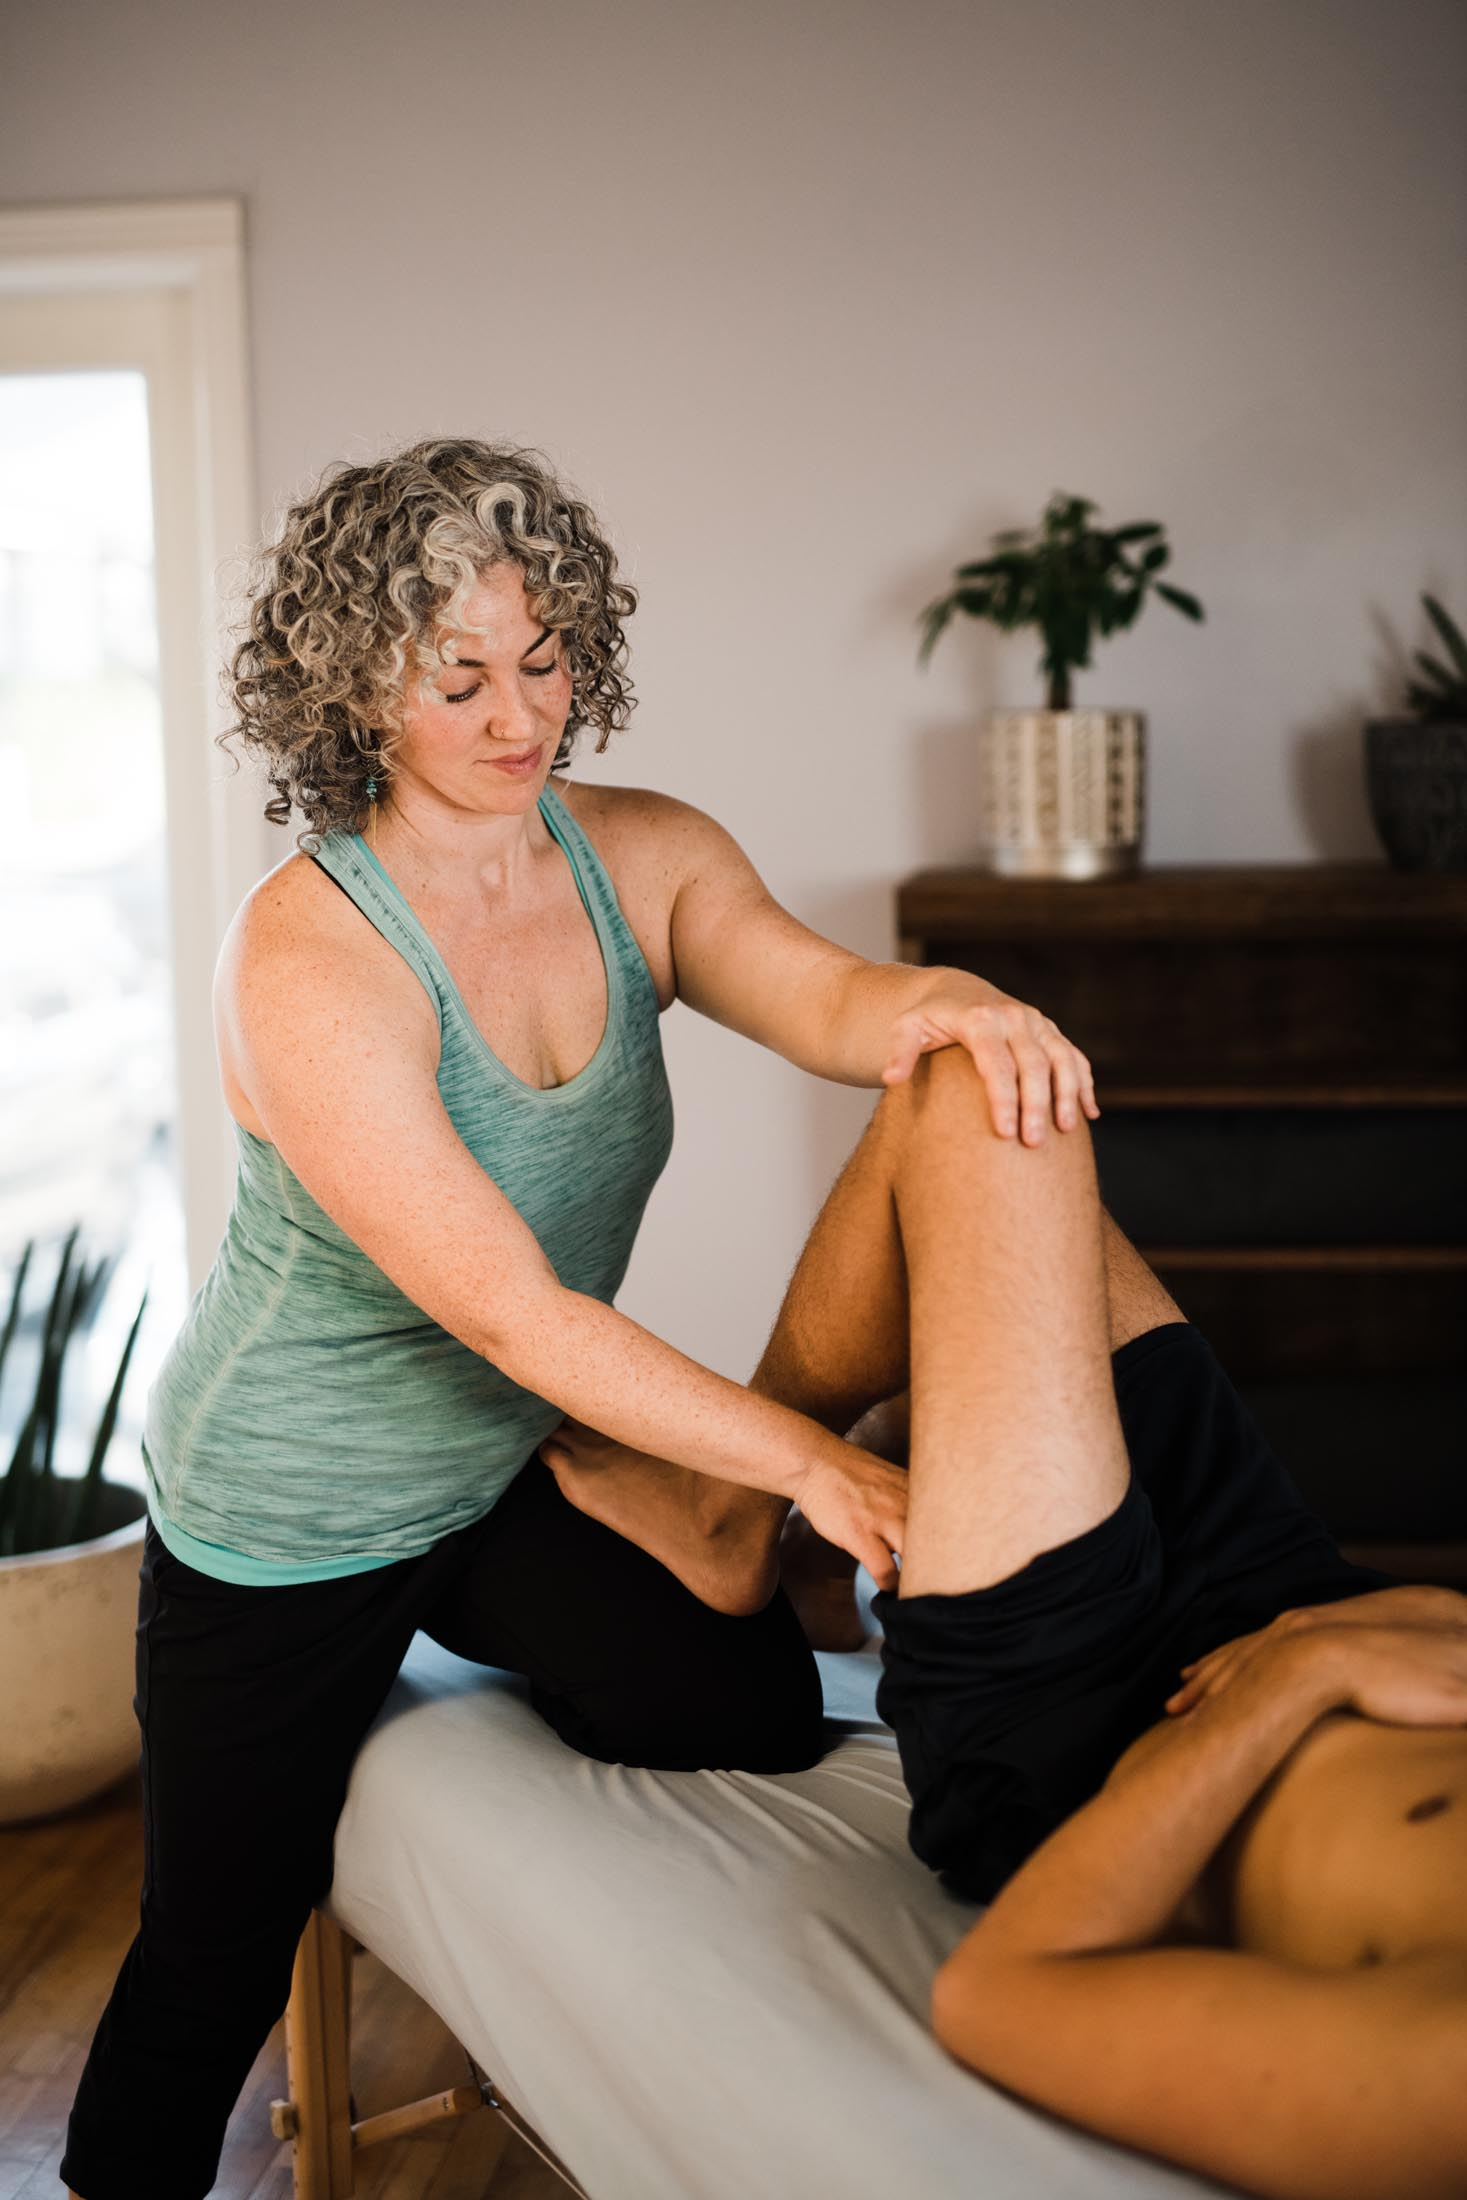 What is a session like? - Rolfing sessions are 75-90 minutes. During our first session, we will spend some time going over your health history and your goals for our work together. After we had some time to chat, I will asses your alignment and movement patterns in both standing and walking. I'm looking to see where your body is balanced and where you have compensatory patterns and tissue adhesions that are potentially causing problems.Most of the session will take place on a massage table. Rolfing is never painful but can be intense (in a hurts so good type of way). At times, I will ask you to make small movements to facilitate a change in the connective tissues. There will be some work done in a seated or standing position.Rolfing attire for men and women is generally underwear or loose fitting gym/yoga clothes. It's important that I have access to your skin but more important that you feel comfortable on the table.